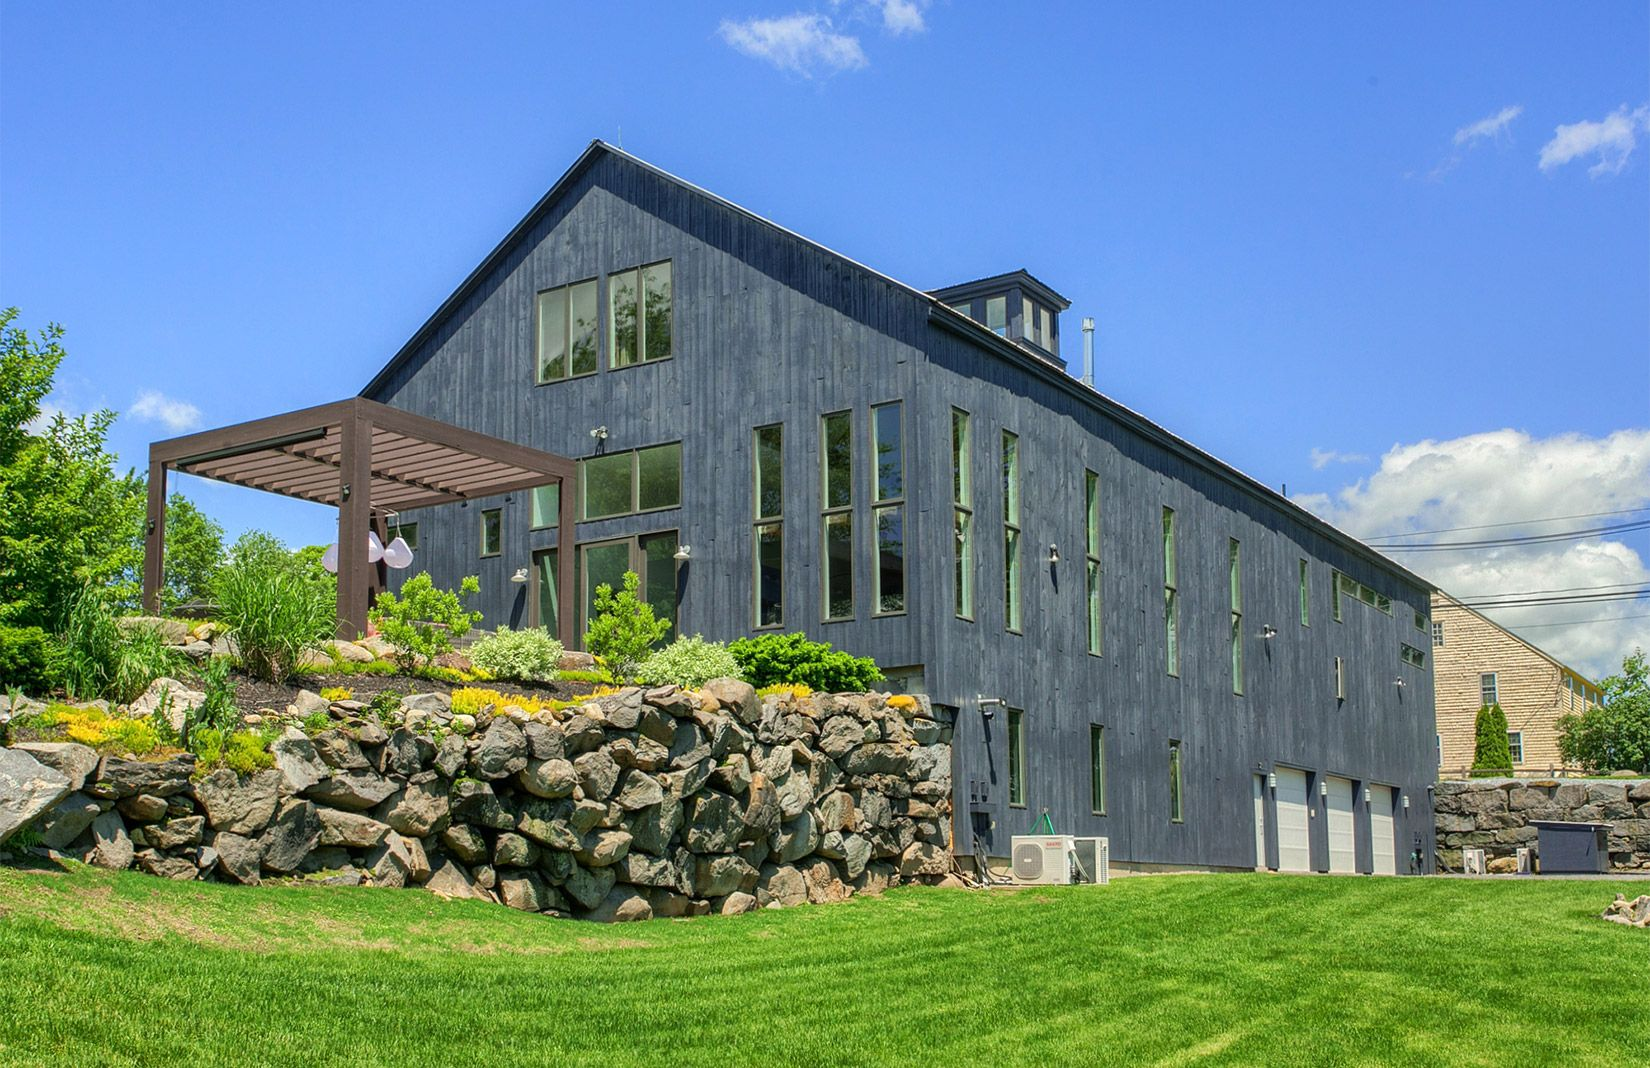 Converted dairy farm near Boston hits the market for